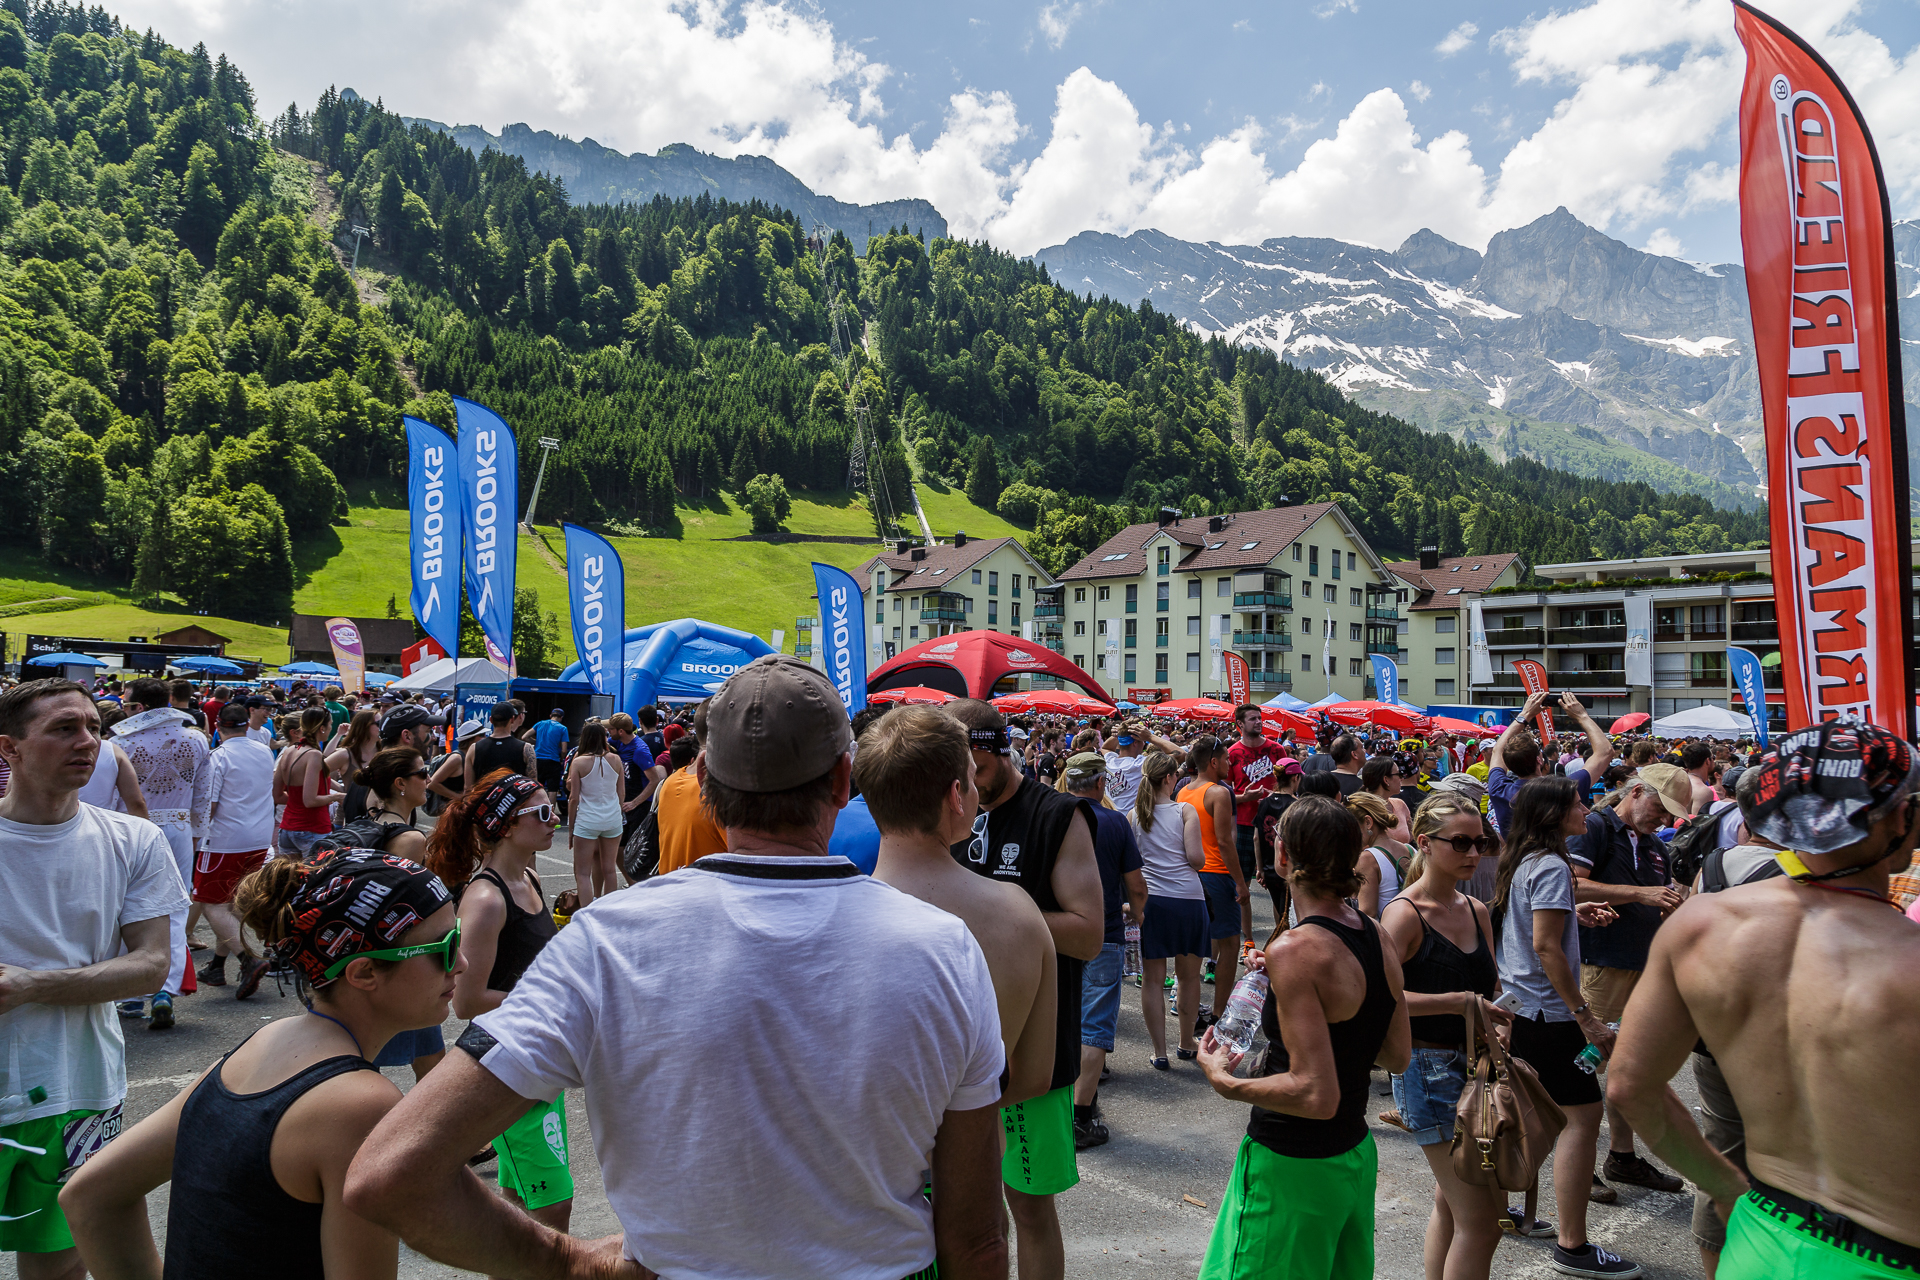 StrongmanRun-Engelberg-Start-1